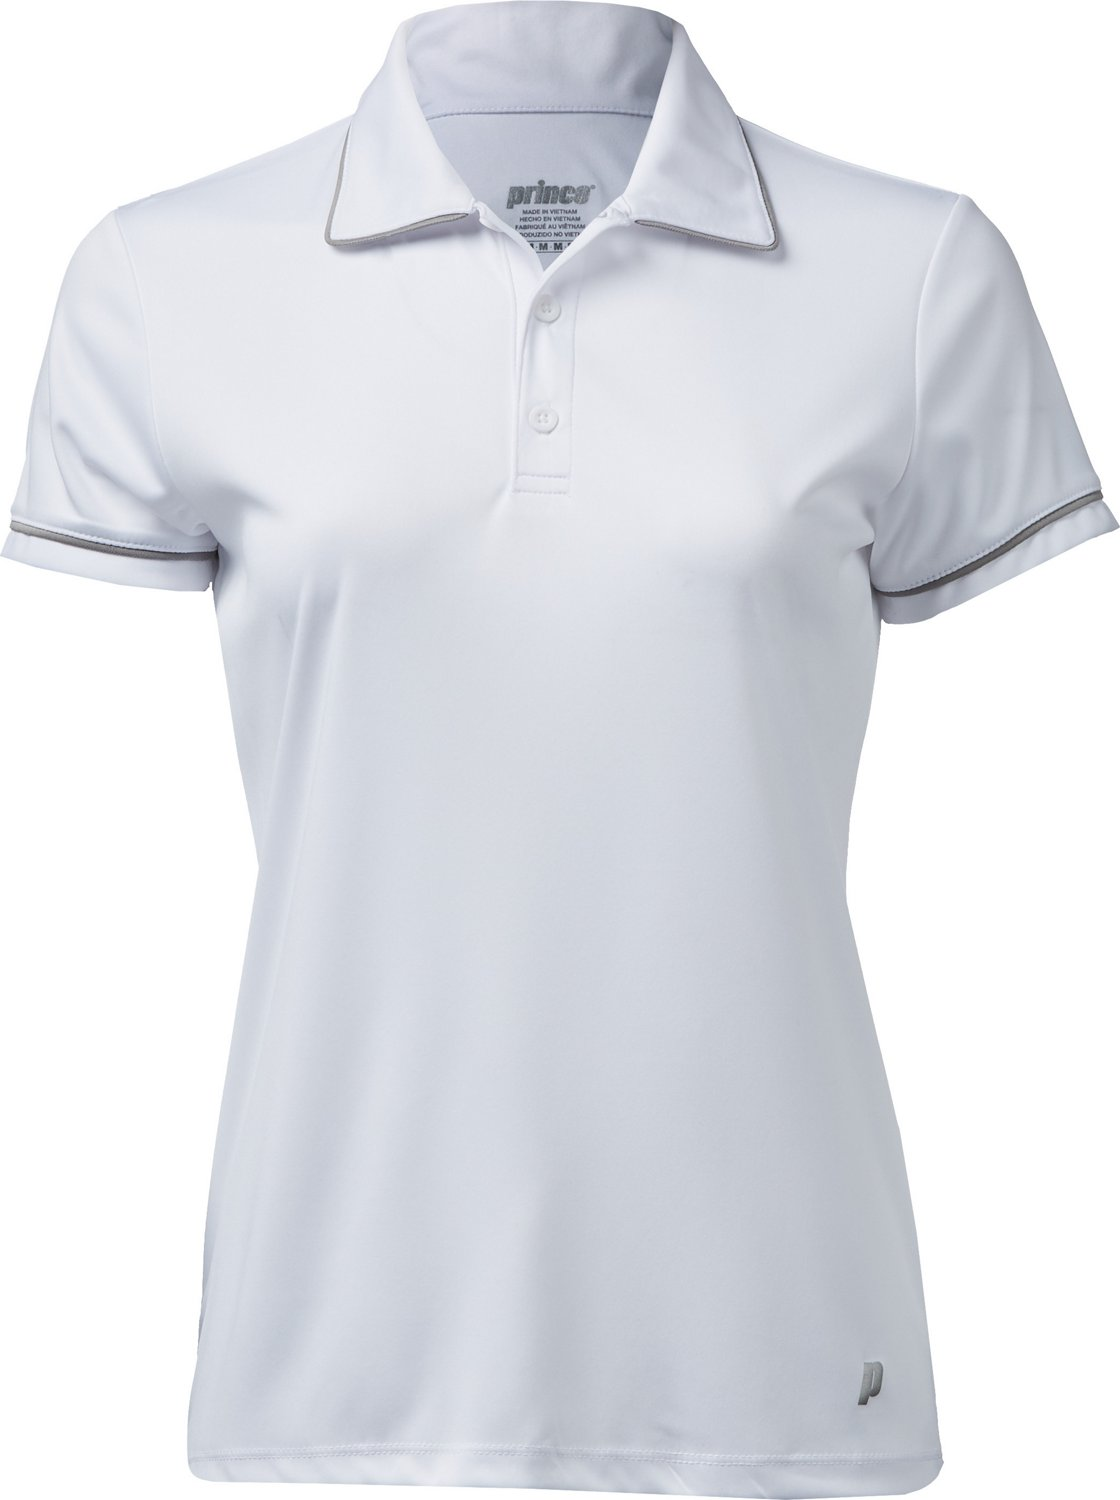 Prince Women s Polo Shirt  5ed2583756